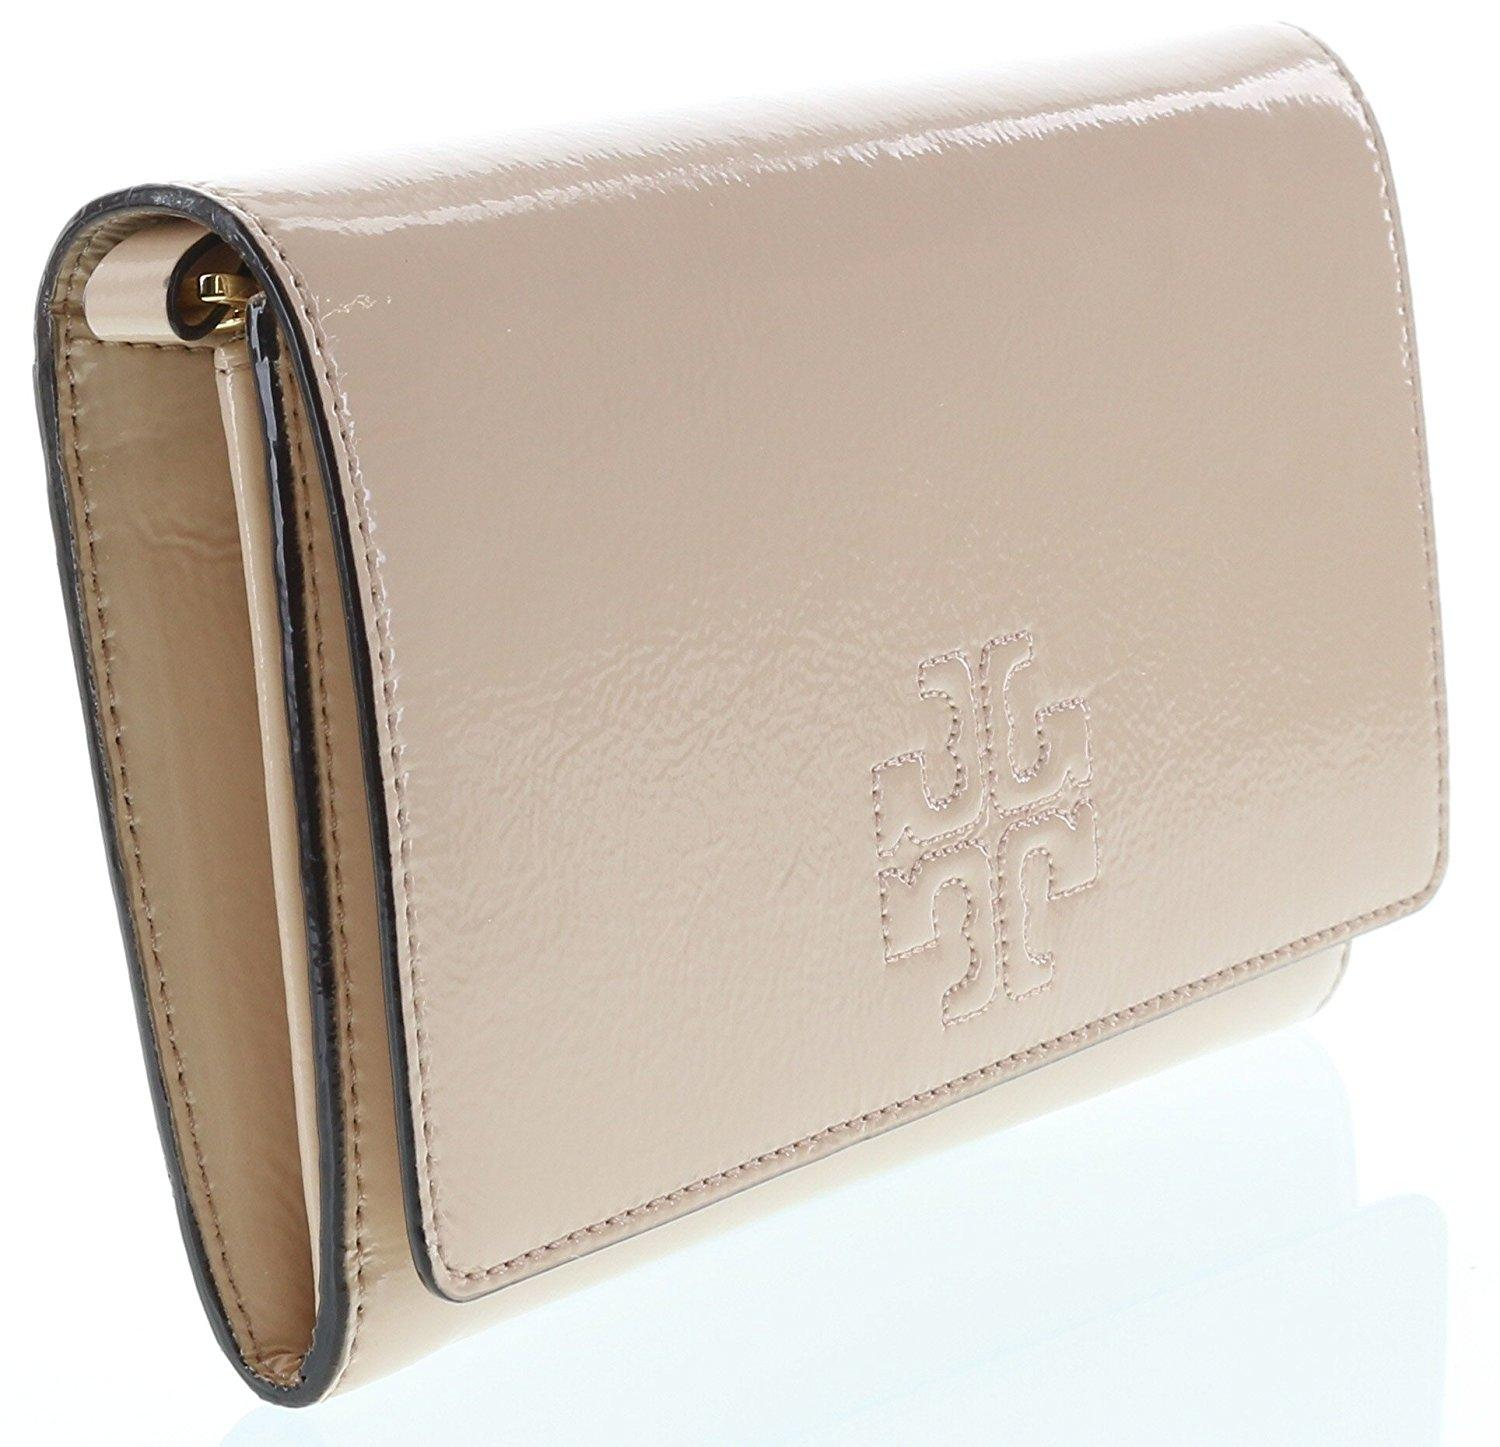 1c42740987ee ... switzerland tory burch charlie patent flat wallet light oak leather  cross body bag tradesy 5a491 e324a